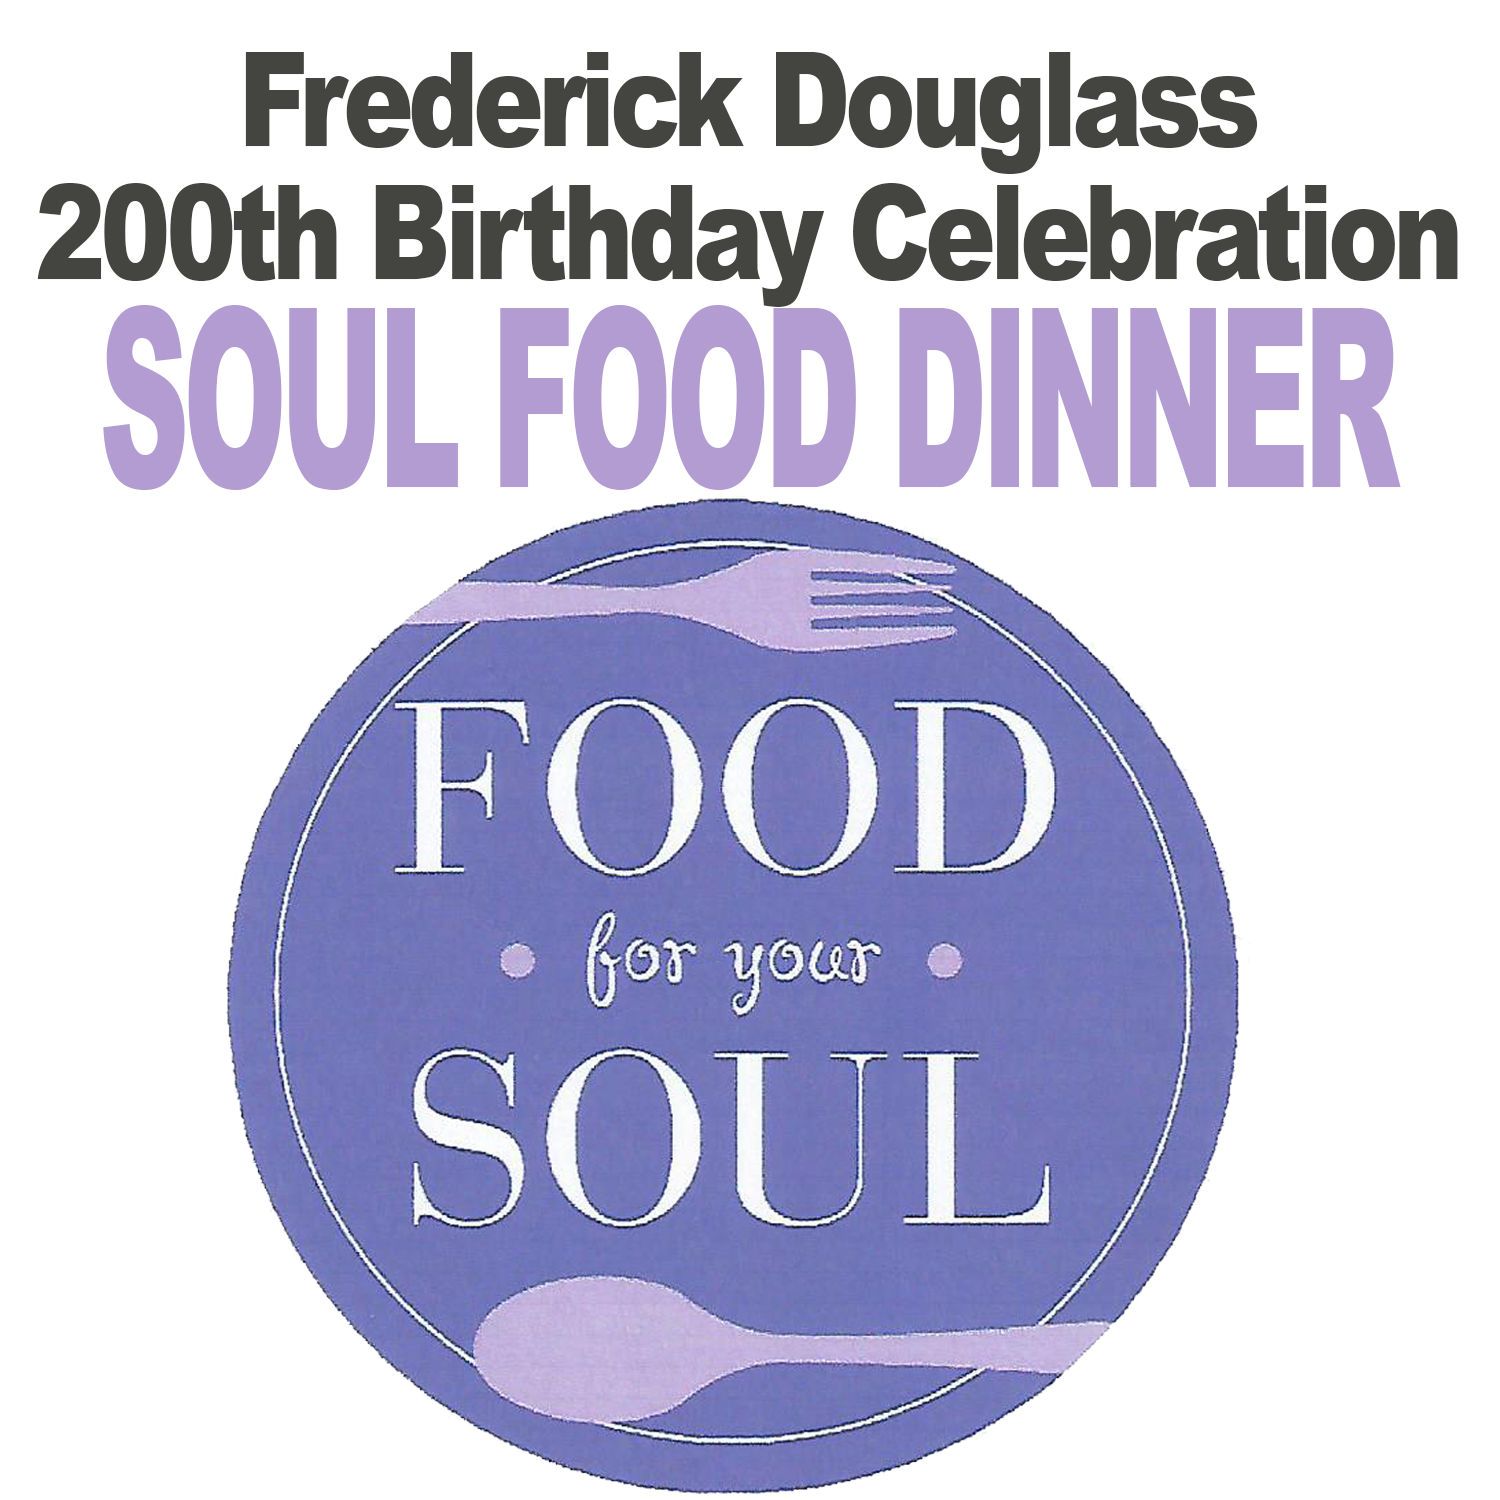 Frederick Douglass 200th Birthday Celebration Soul Food Dinner